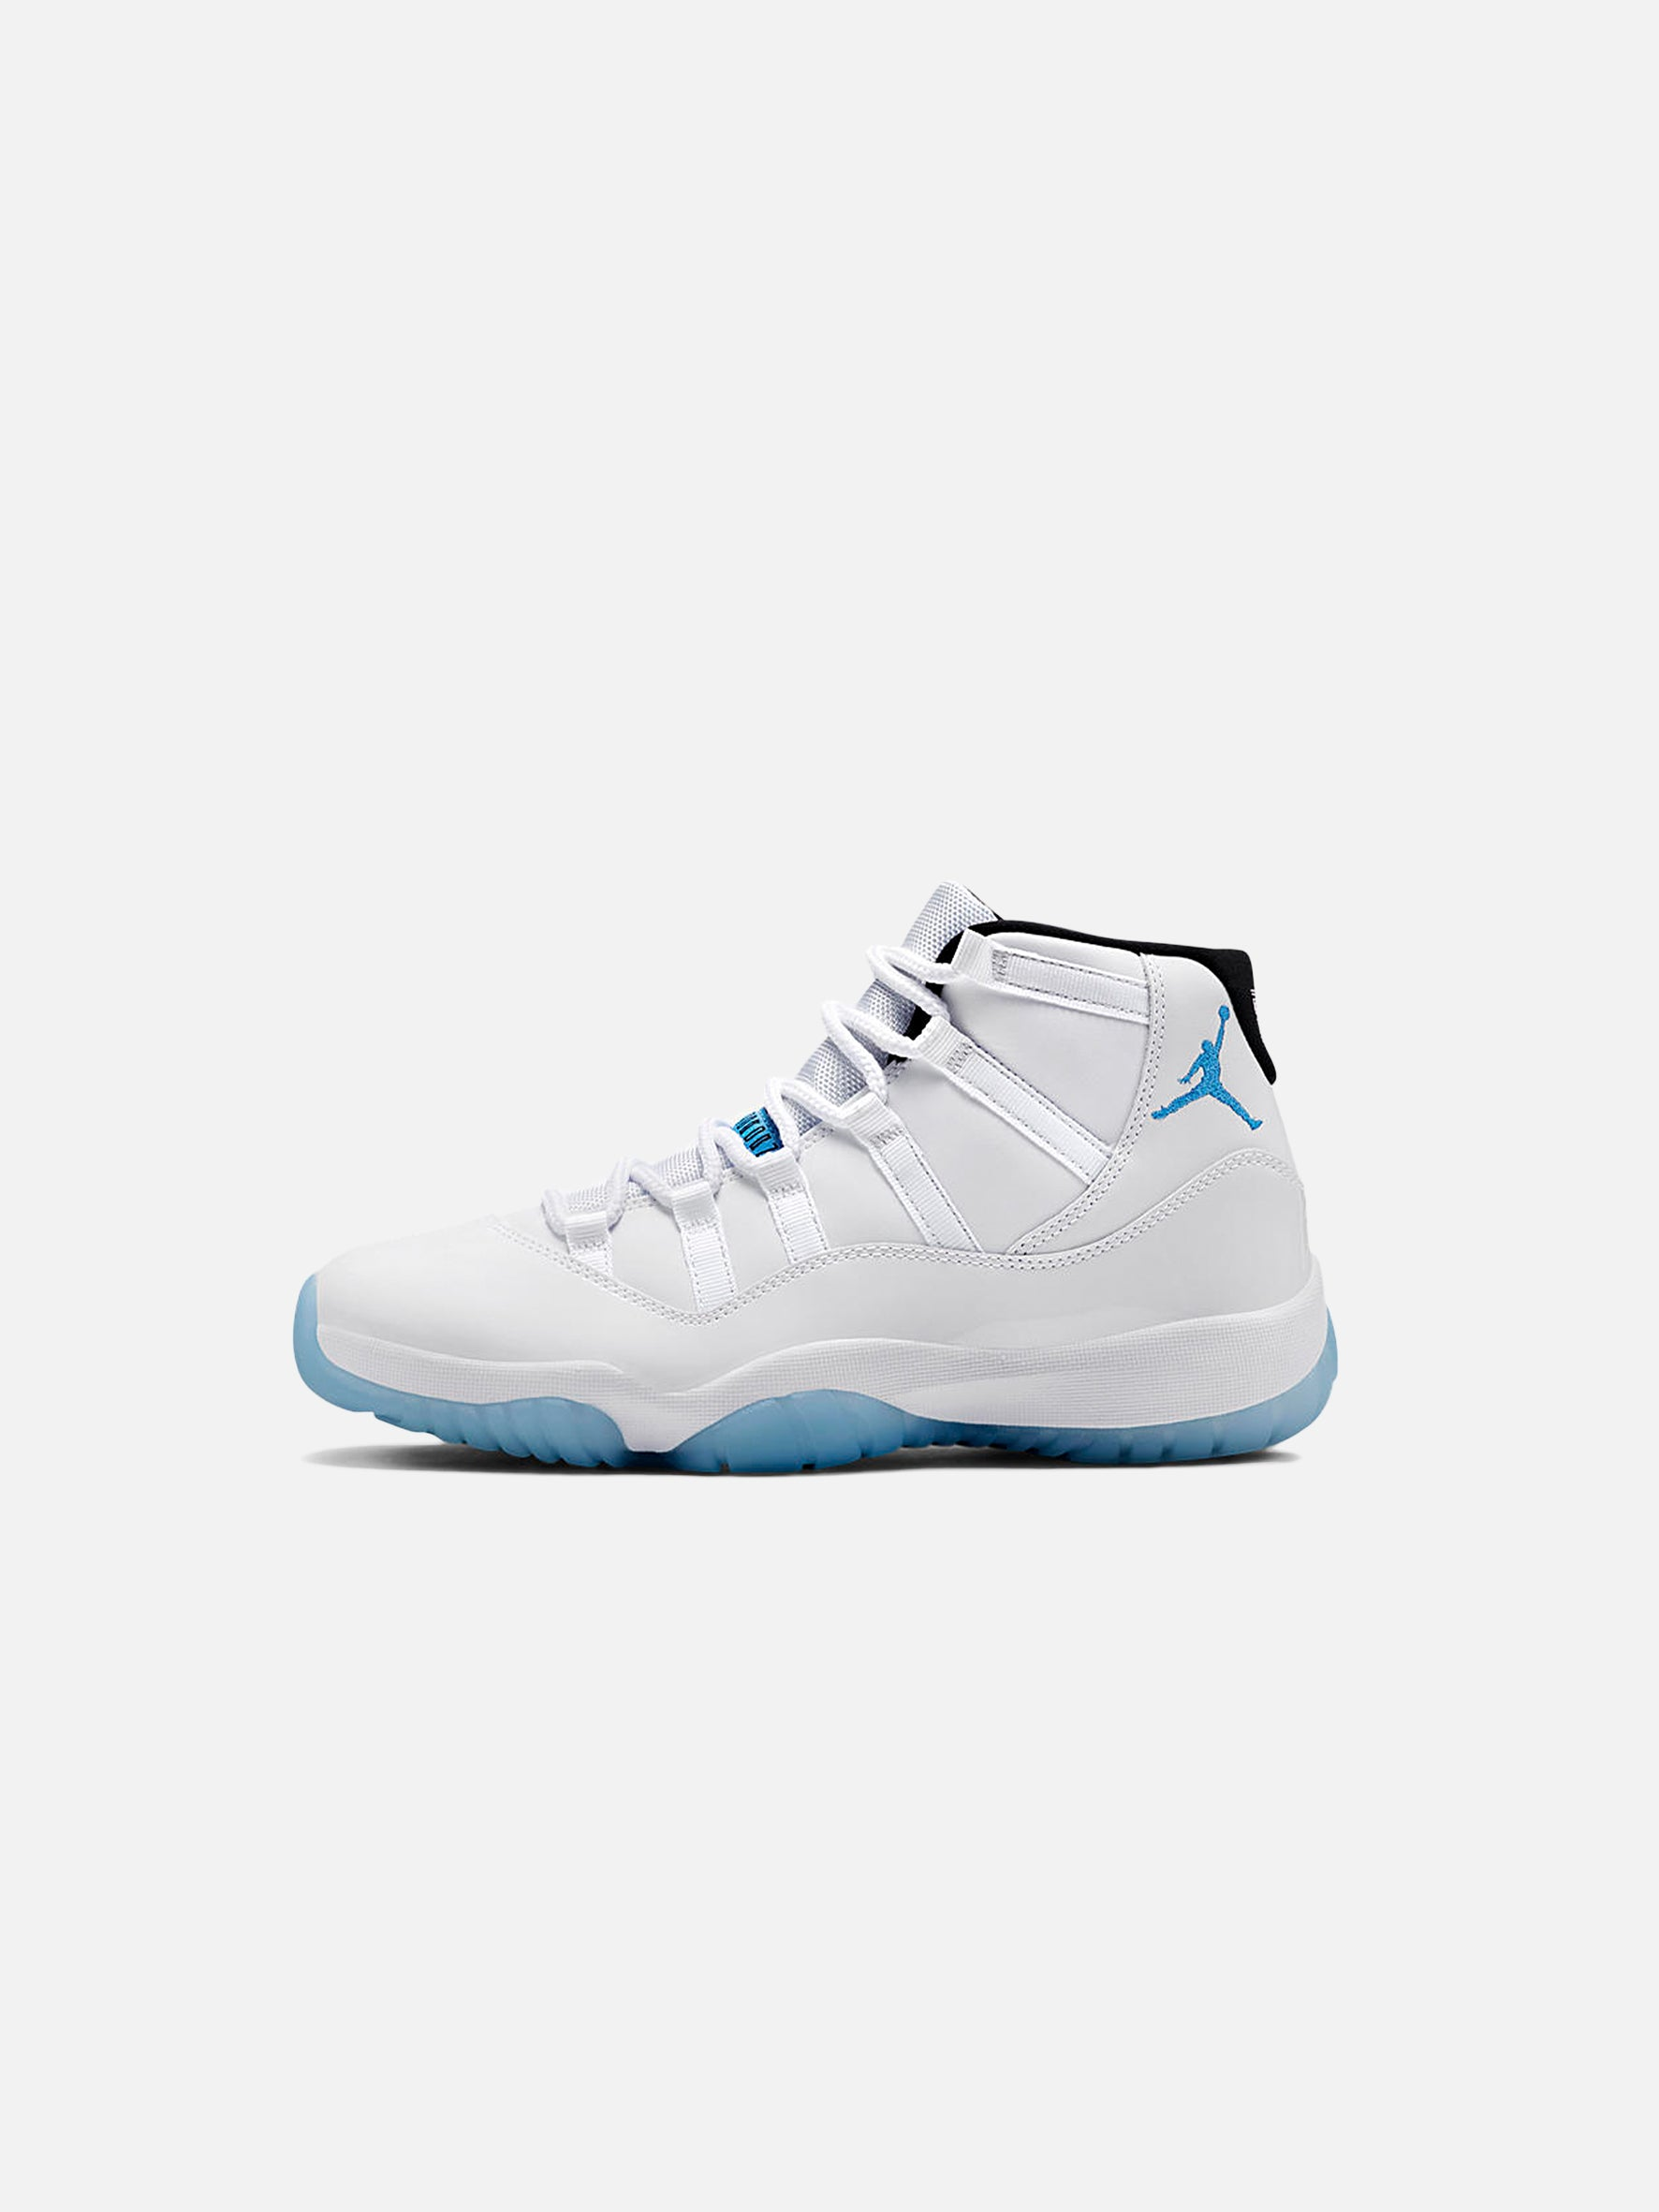 Nike Air Jordan XI Legend Blue